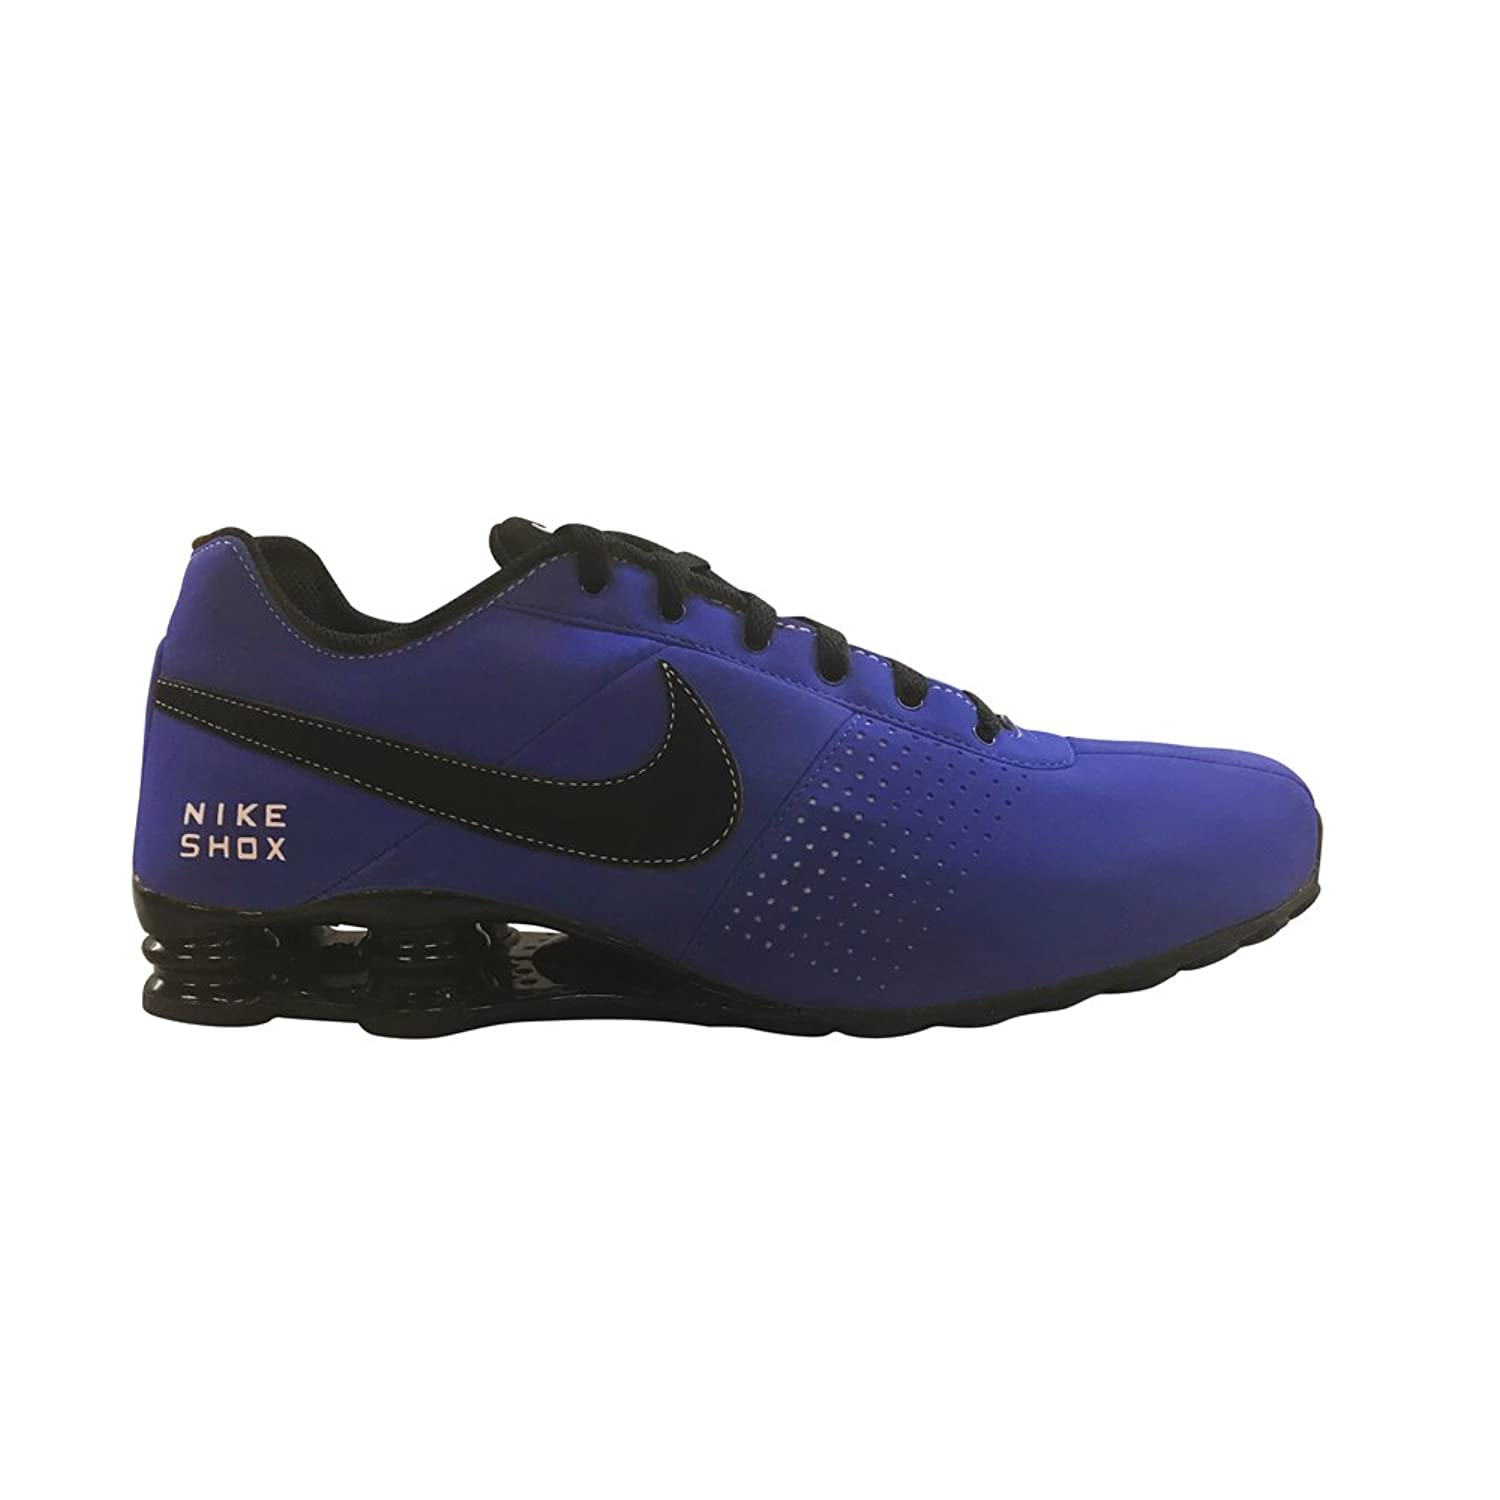 7bab43702cf Comfortable Nike Men Shox Deliver Sneakers New Royal Blue Black Deliver  Sneakers Royal Never let you regret